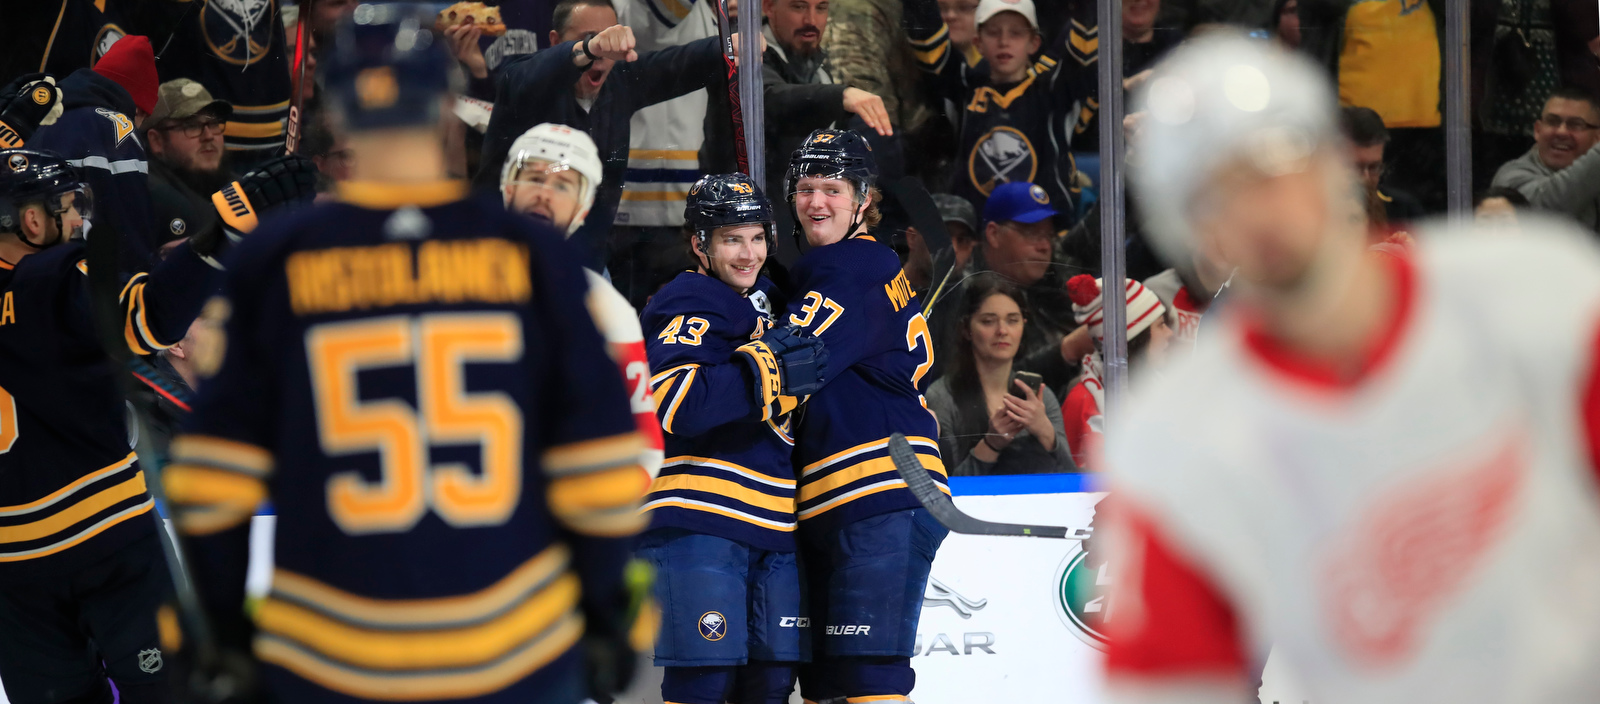 Buffalo Sabres forward Casey Mittelstadt congratulates Conor Sheary on his goal against the Detroit Red Wings during the second period at the KeyBank center on Saturday, Feb. 9, 2019. (Harry Scull Jr./Buffalo News)